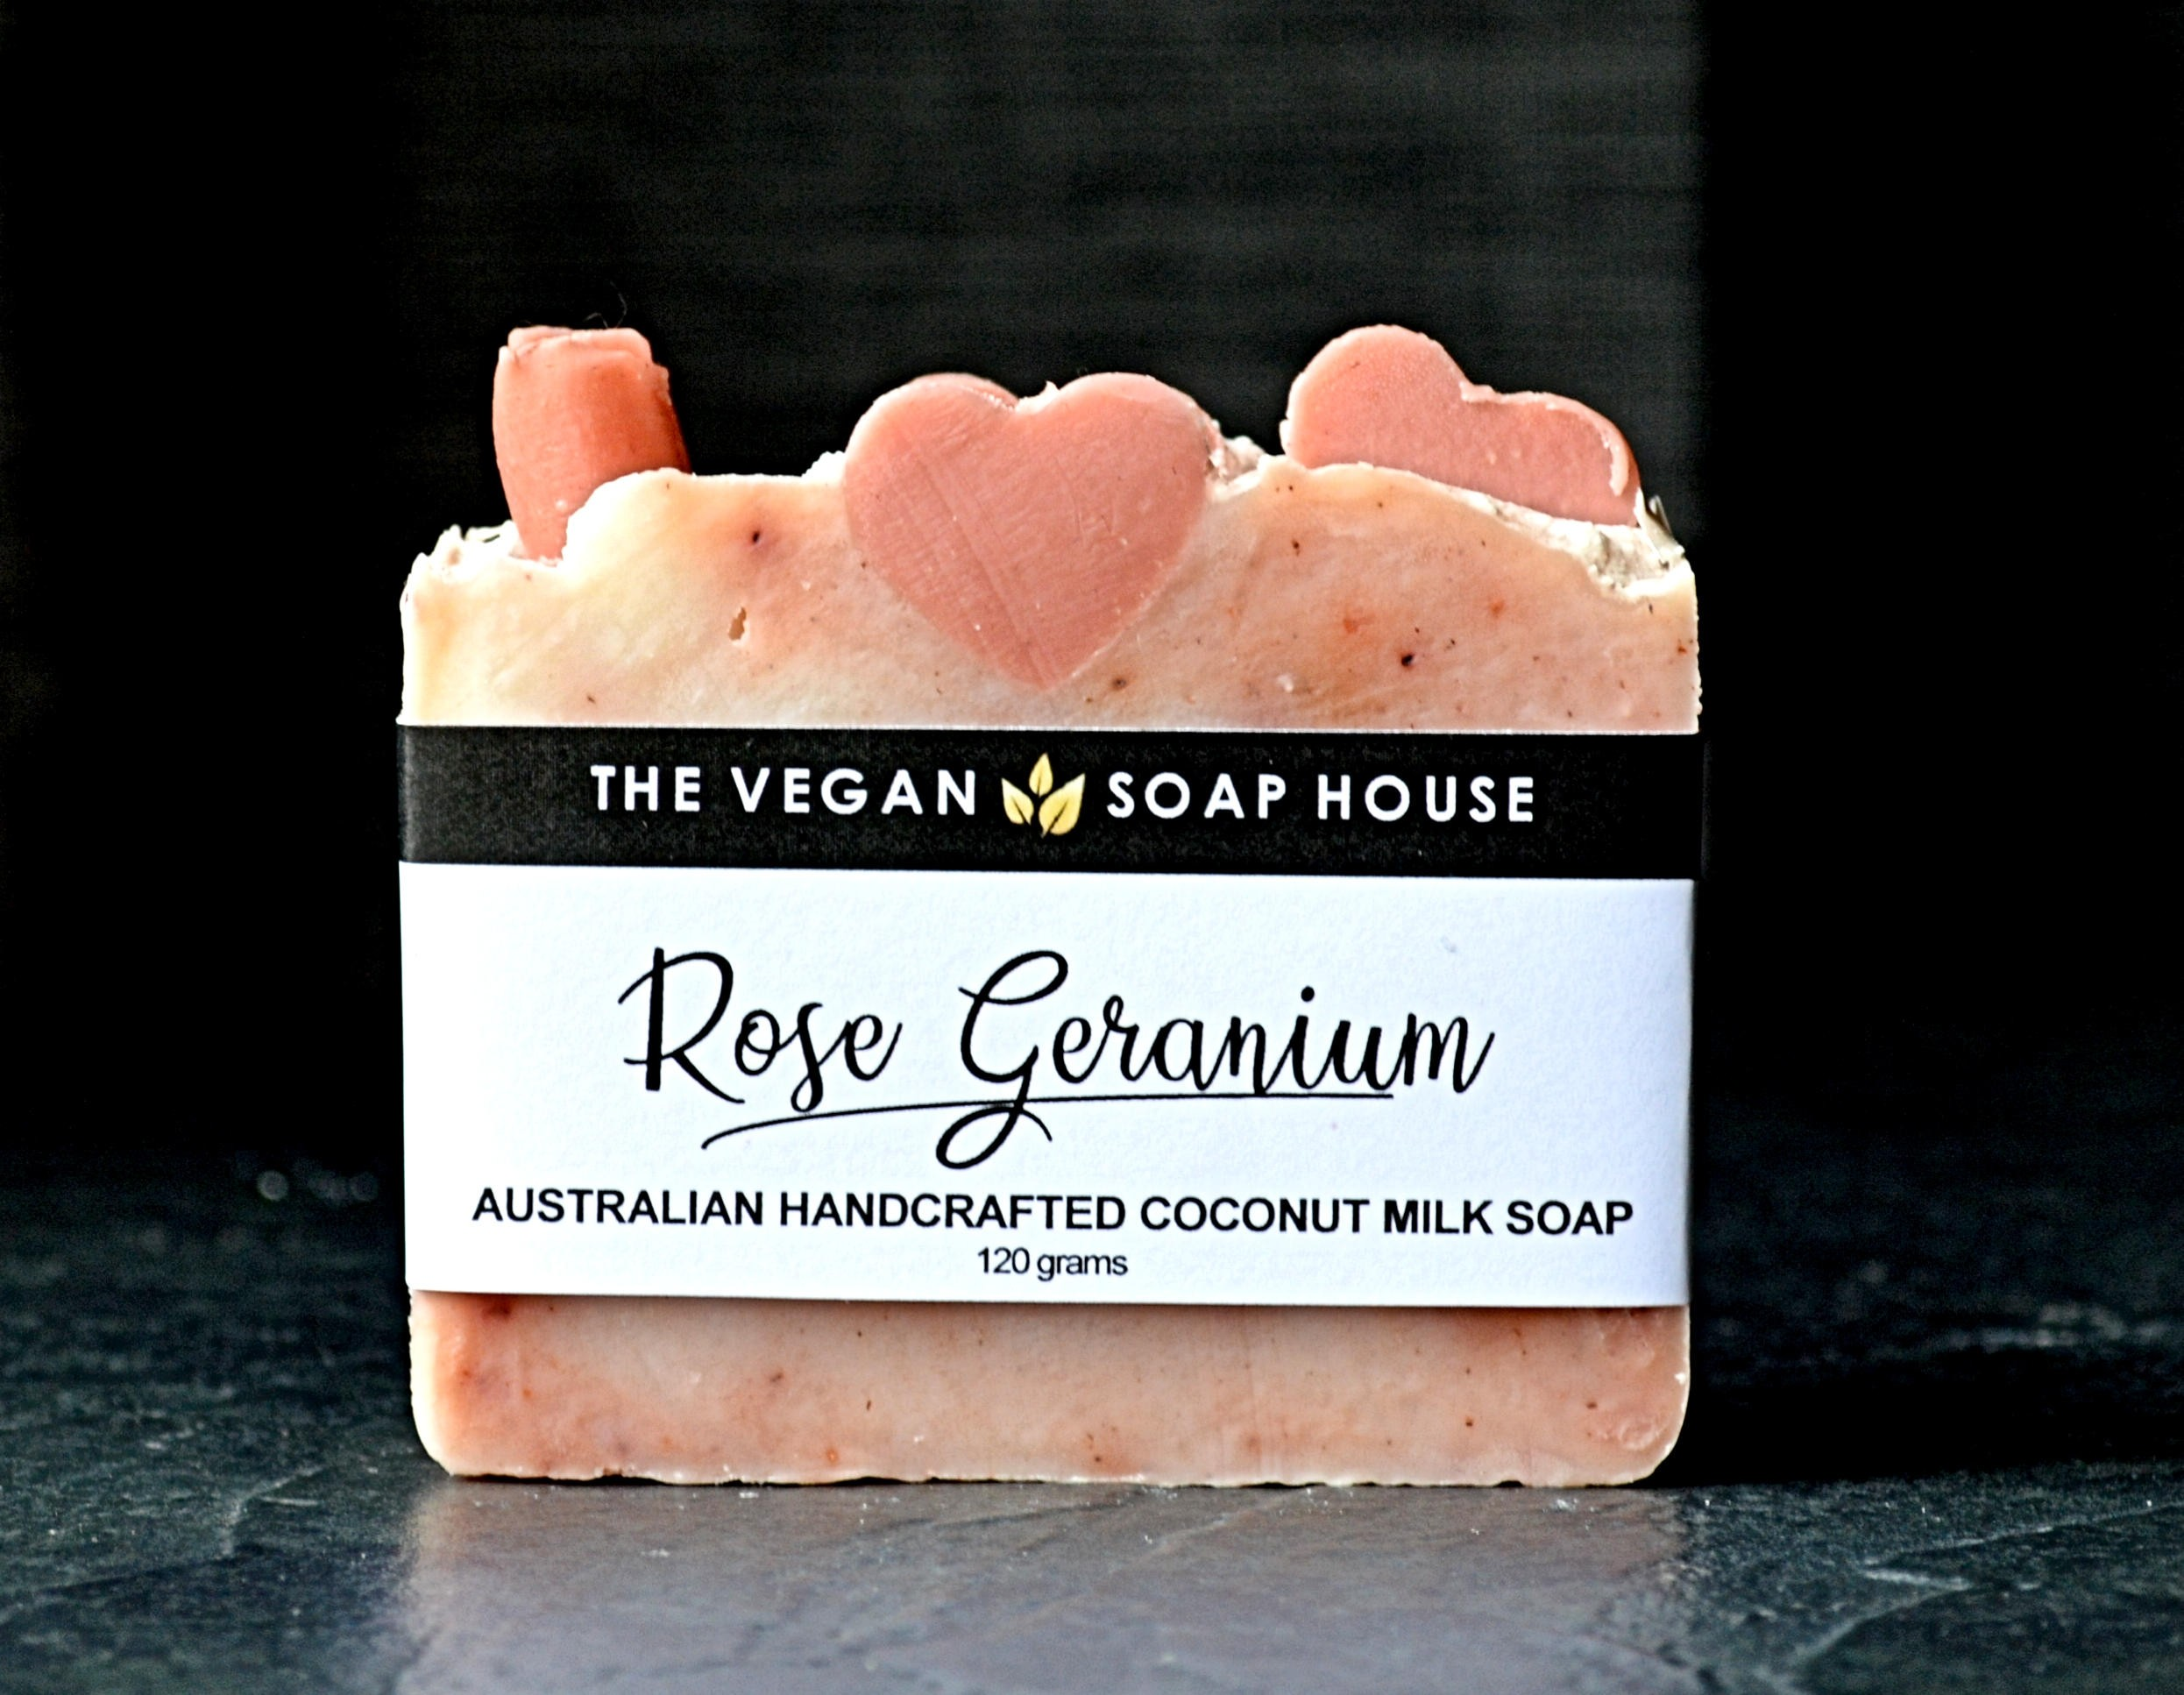 The Vegan Soap House Rose Geranium